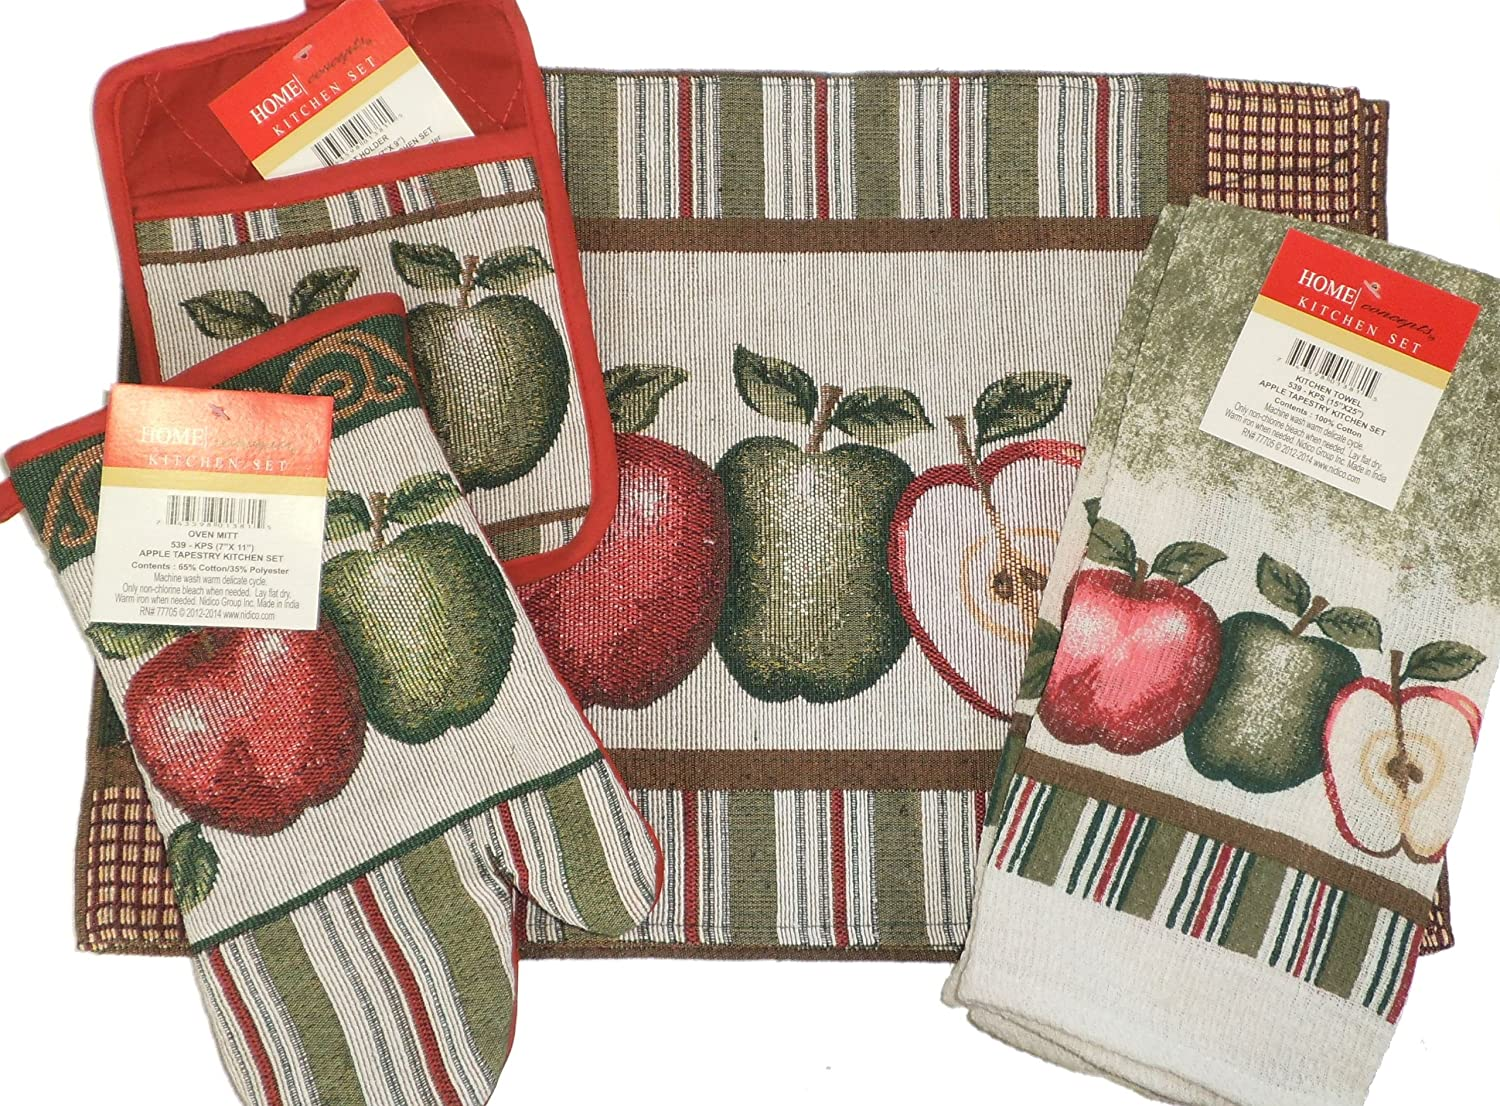 8 Piece Red Apples Kitchen Set with Potholders, Oven Mitt, 4 Placemats & 2 Towels hospital cleaner disinfectant towels 6 3 4 x 8 150 can 8 canisters carton